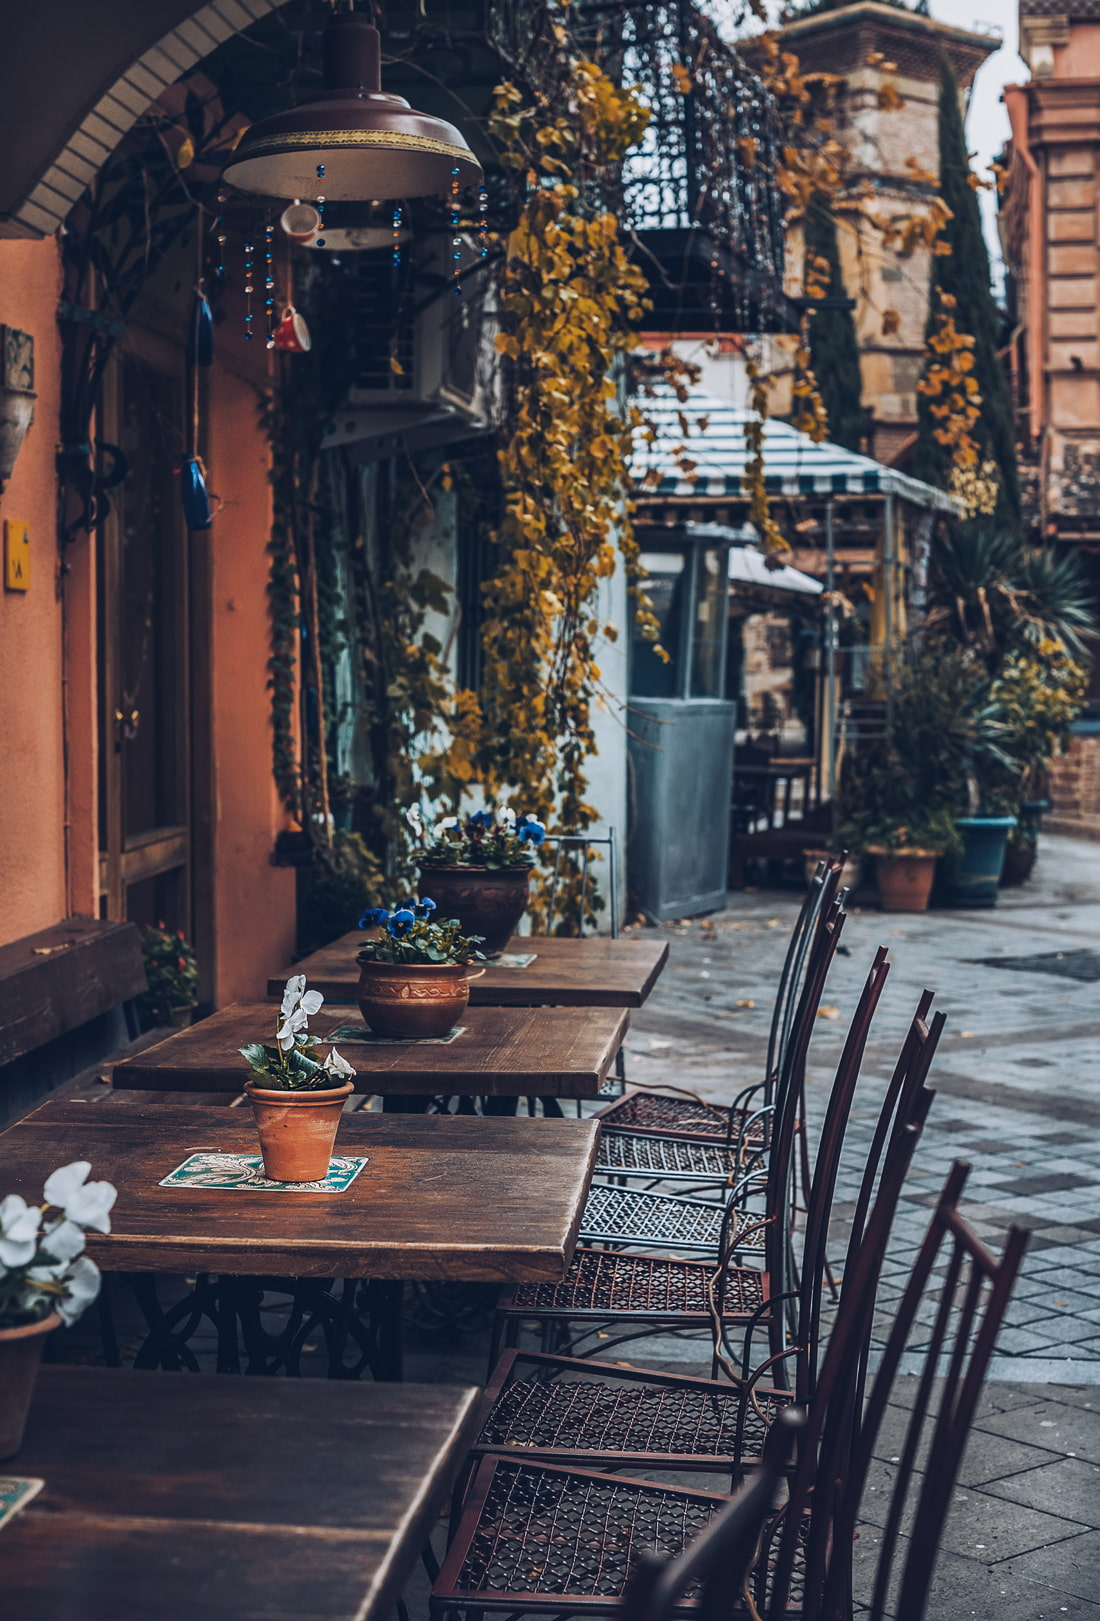 Street cafe in Tbilisi